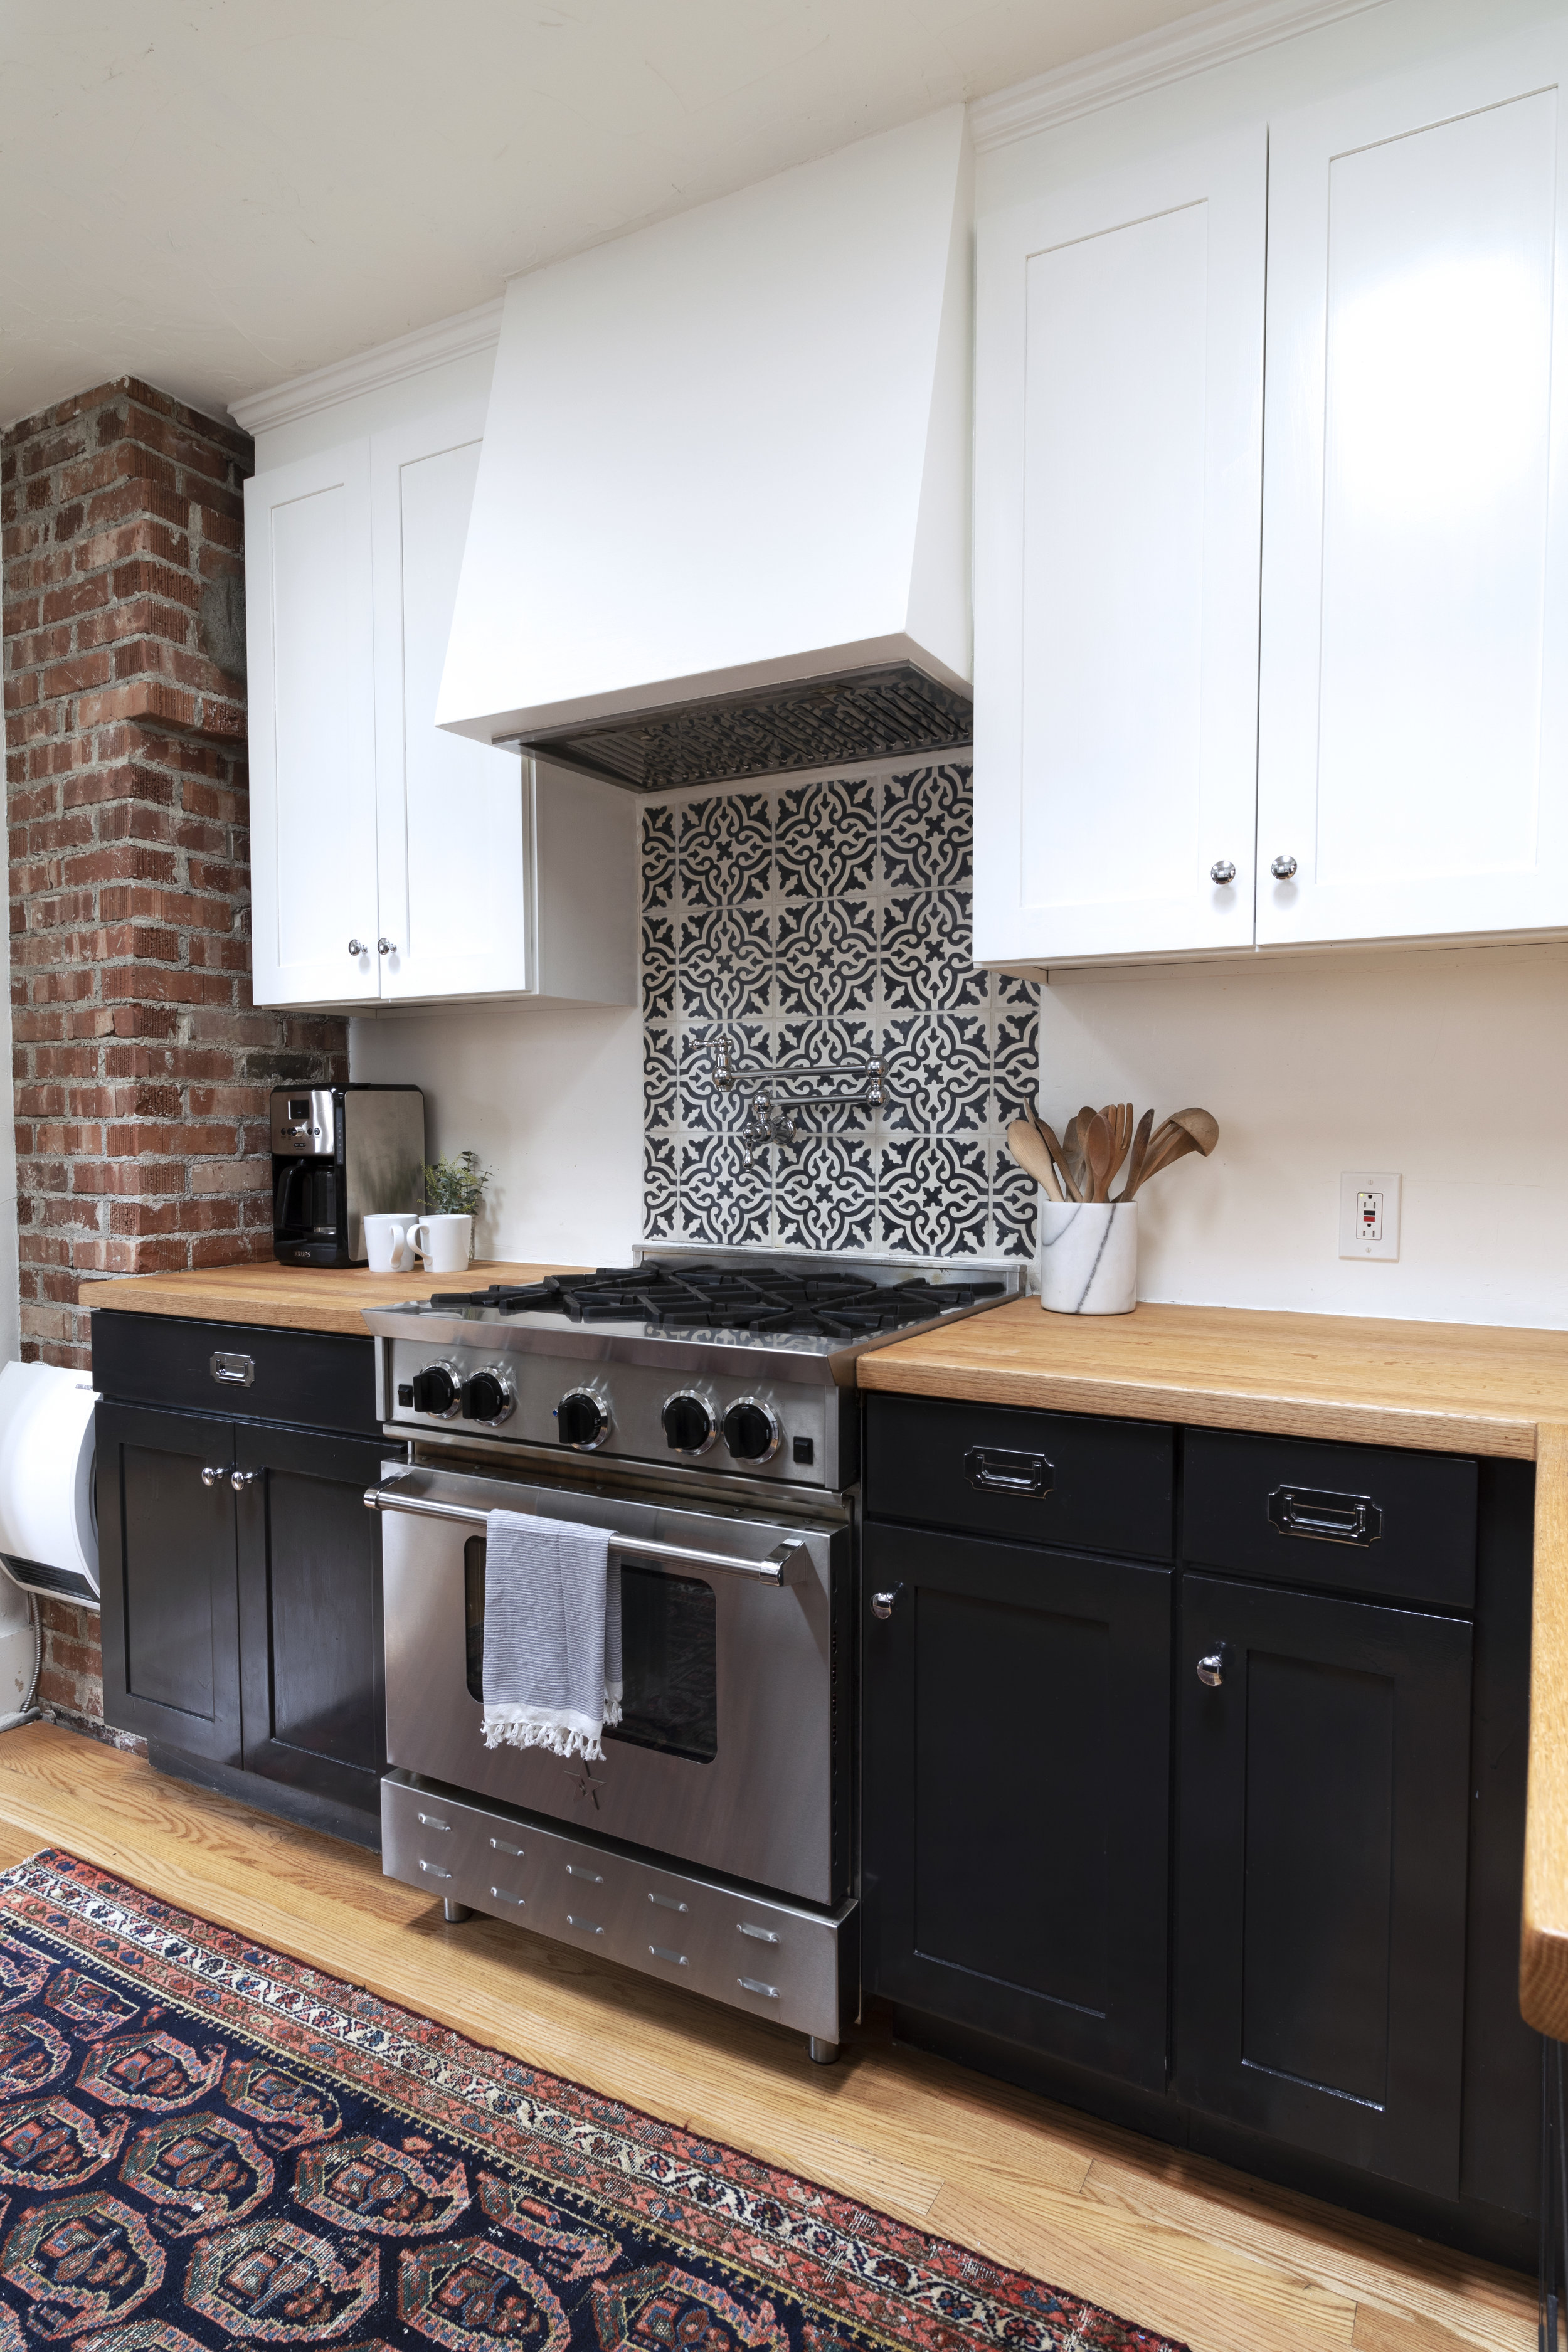 Cement Tile Backsplash at the Dexter House Kitchen // the Grit and Polish